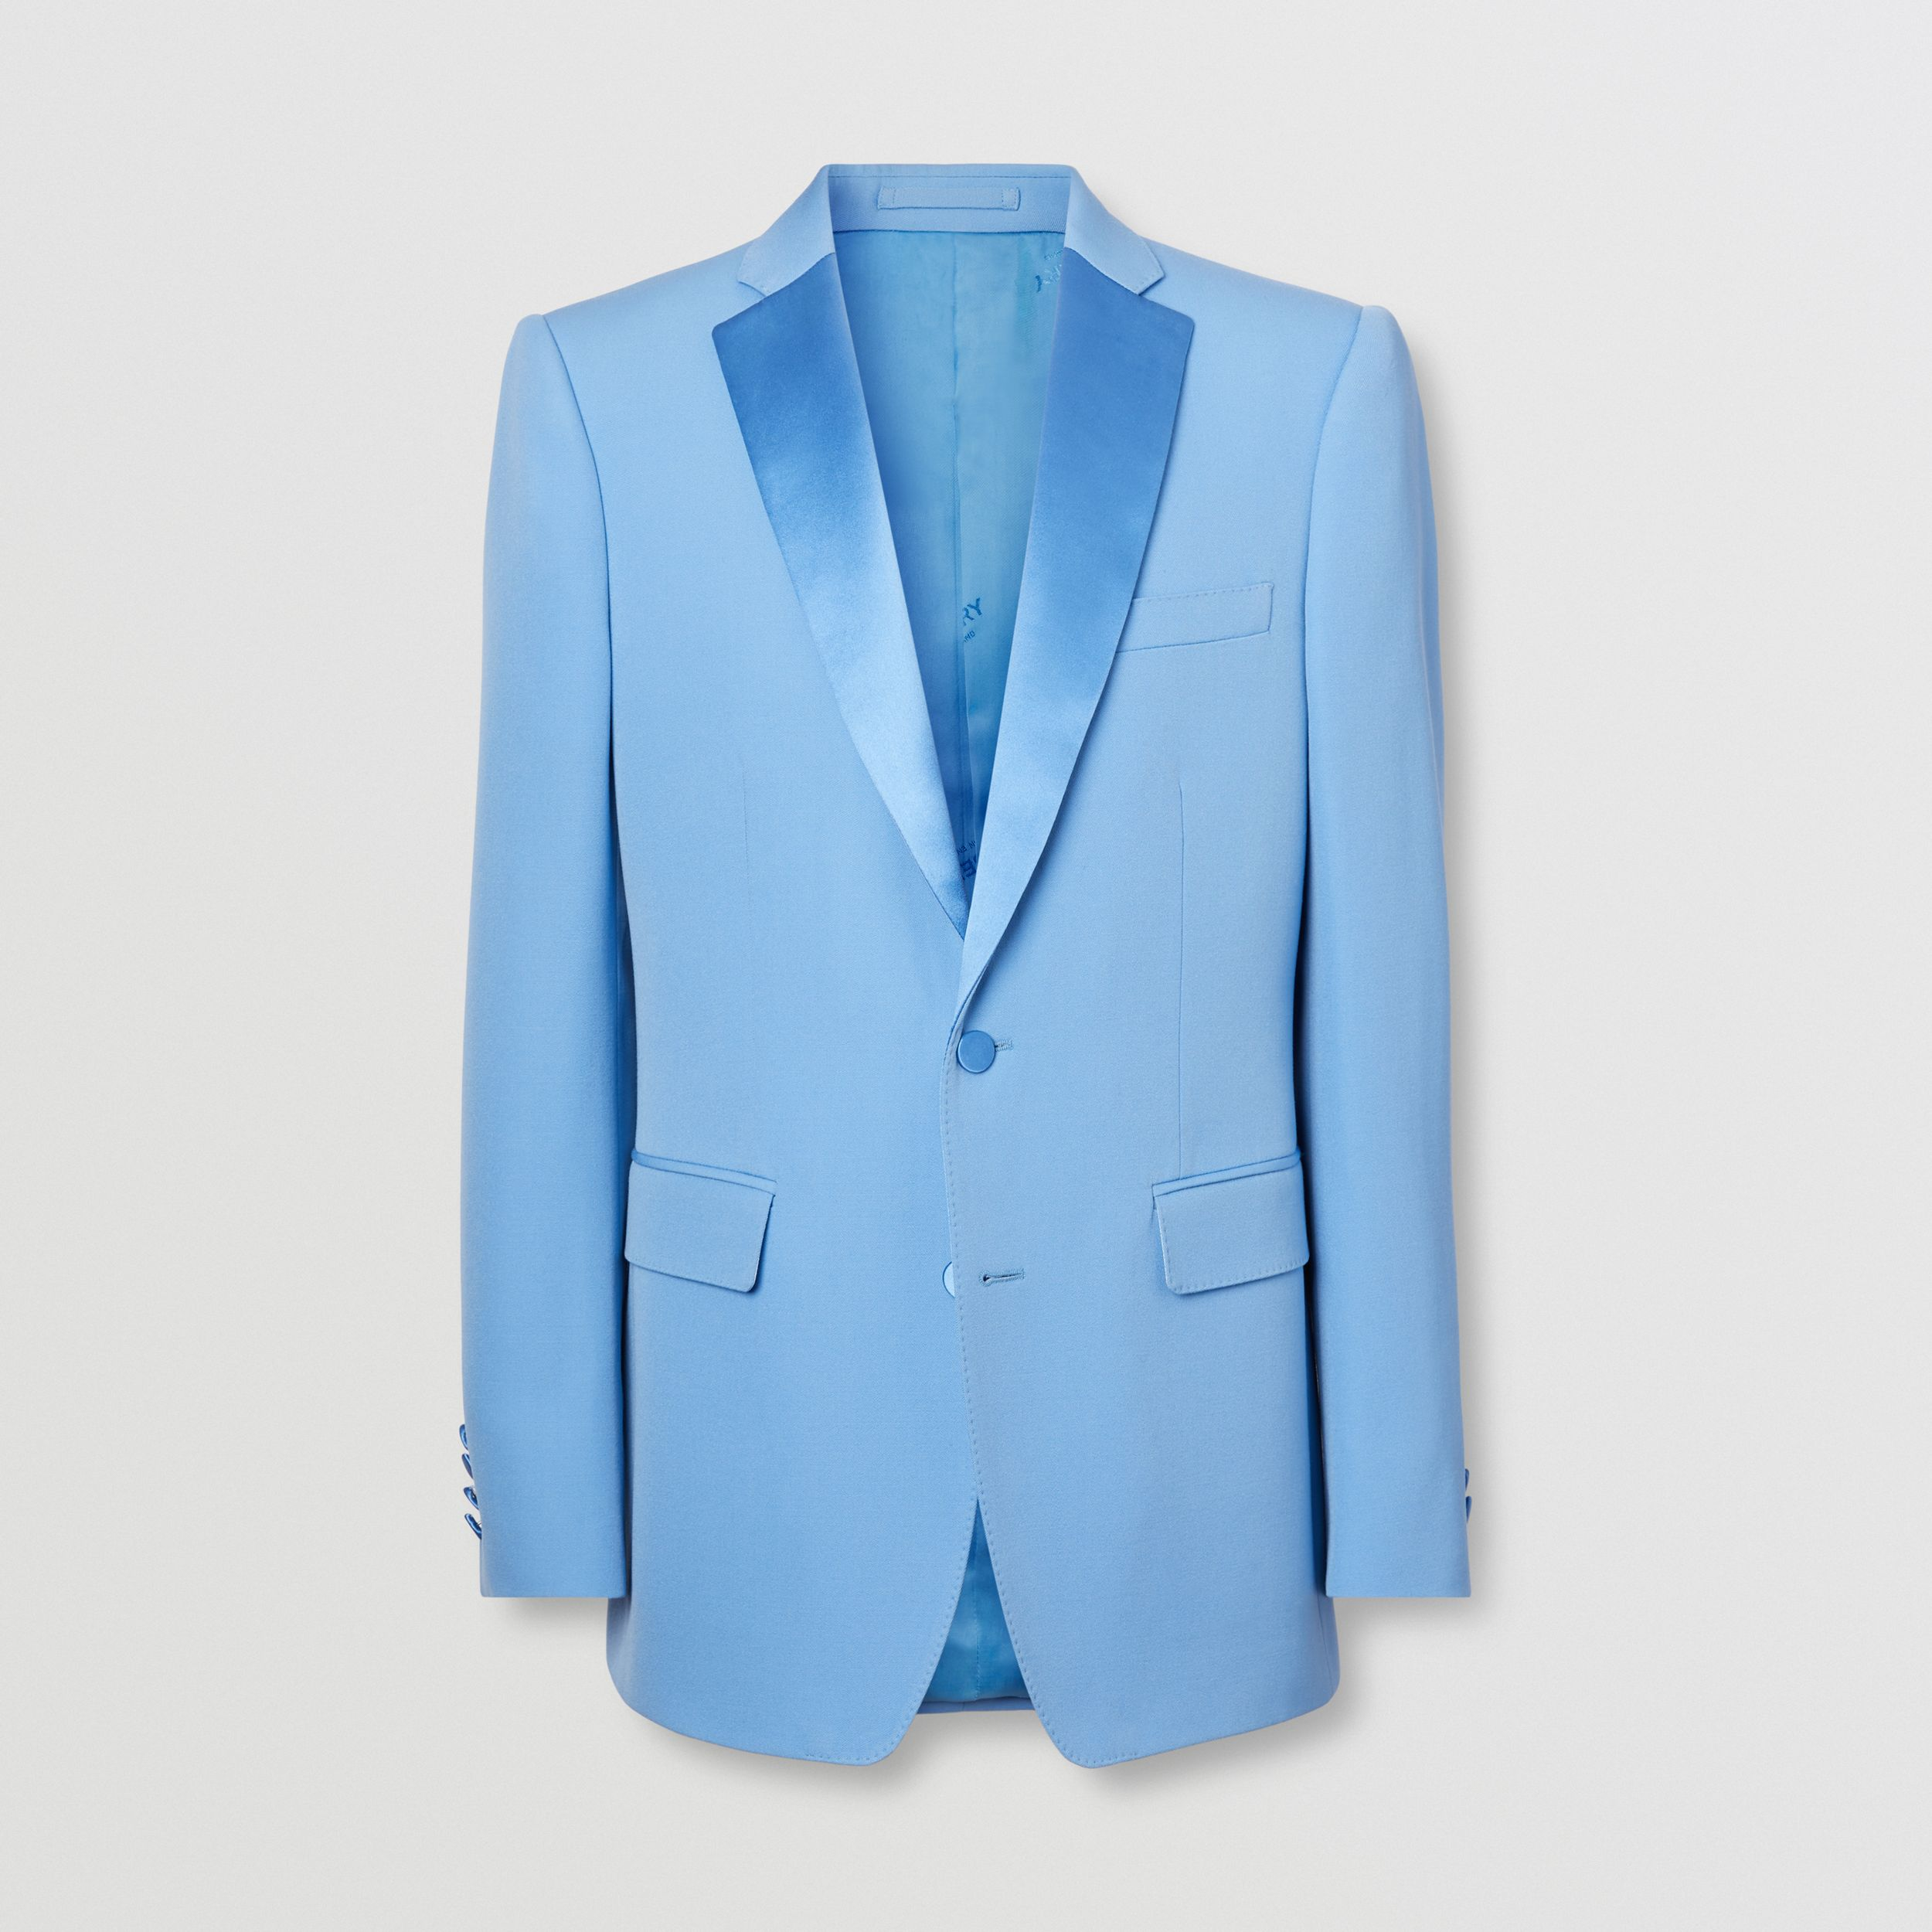 English Fit Grain De Poudre Wool Tuxedo Jacket in Vivid Cobalt - Men | Burberry - 4